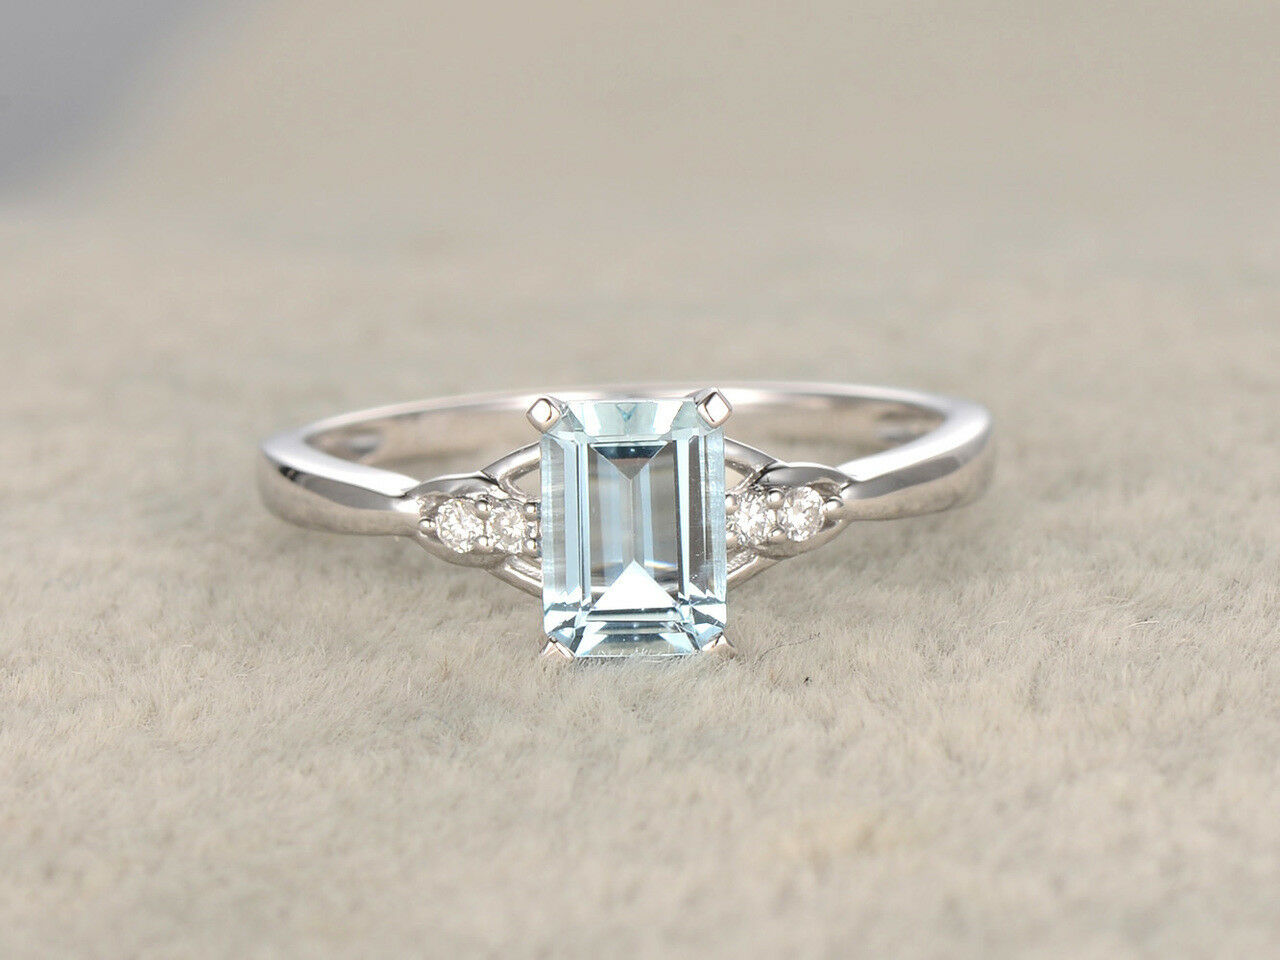 0.8ct Emerald Cut bluee Topaz Solitaire Engagement Ring 14k White gold Finish New